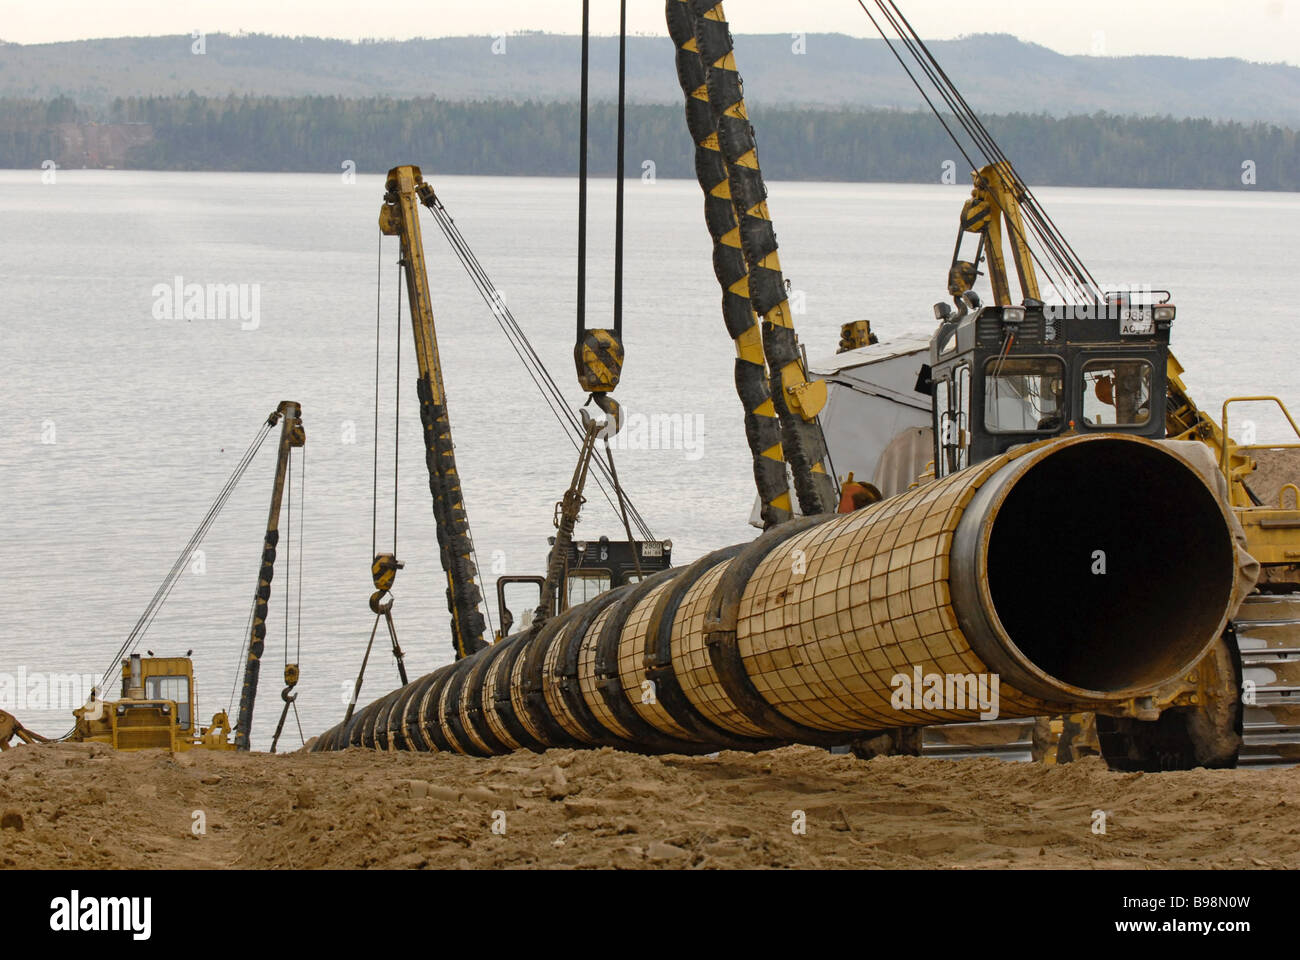 The construction of the East Siberia Pacific Ocean pipeline by the